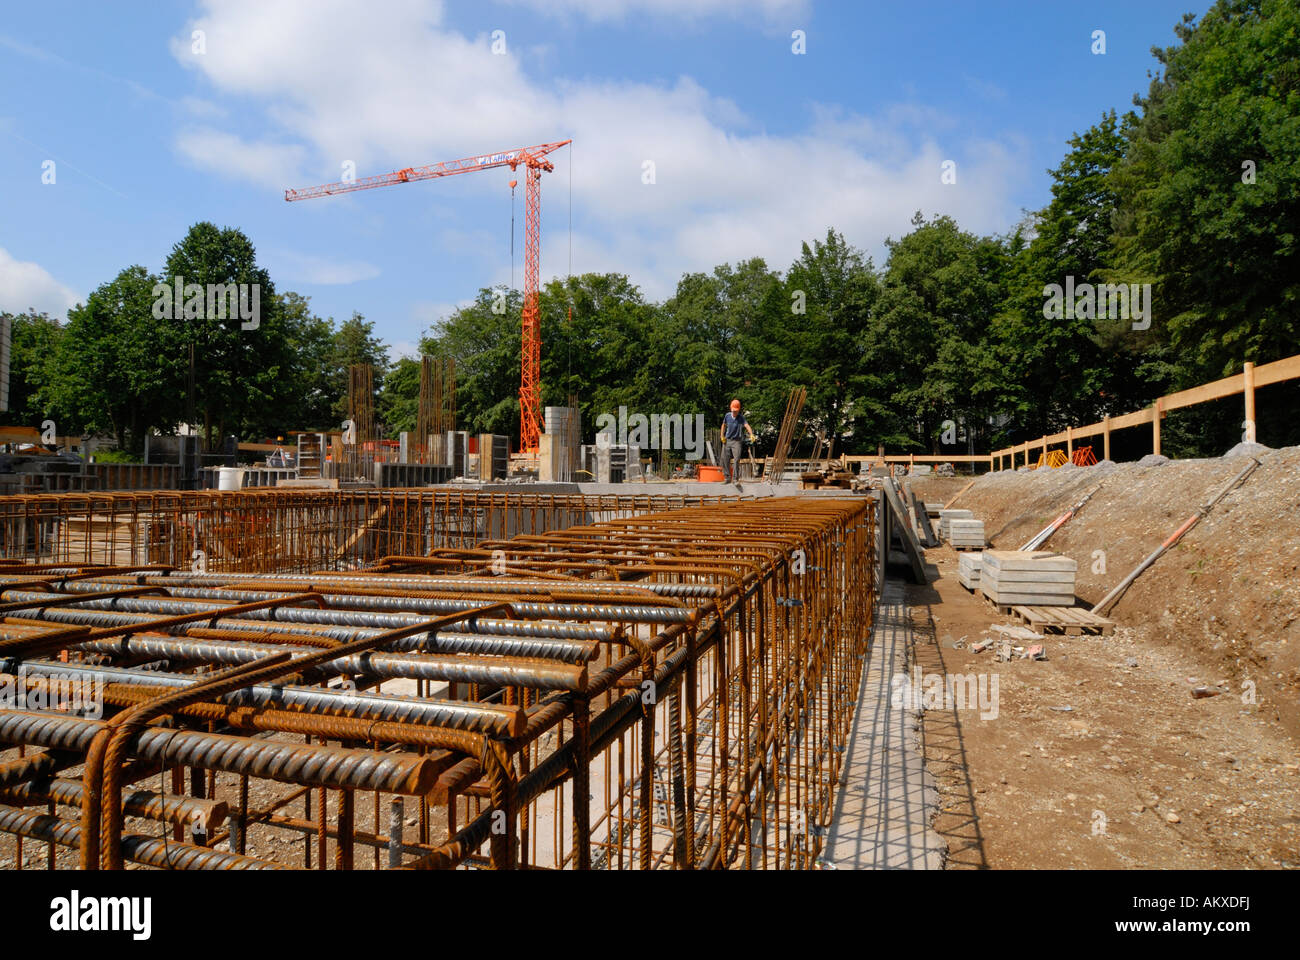 A tied rebar beam cage - Germany, Europe. - Stock Image